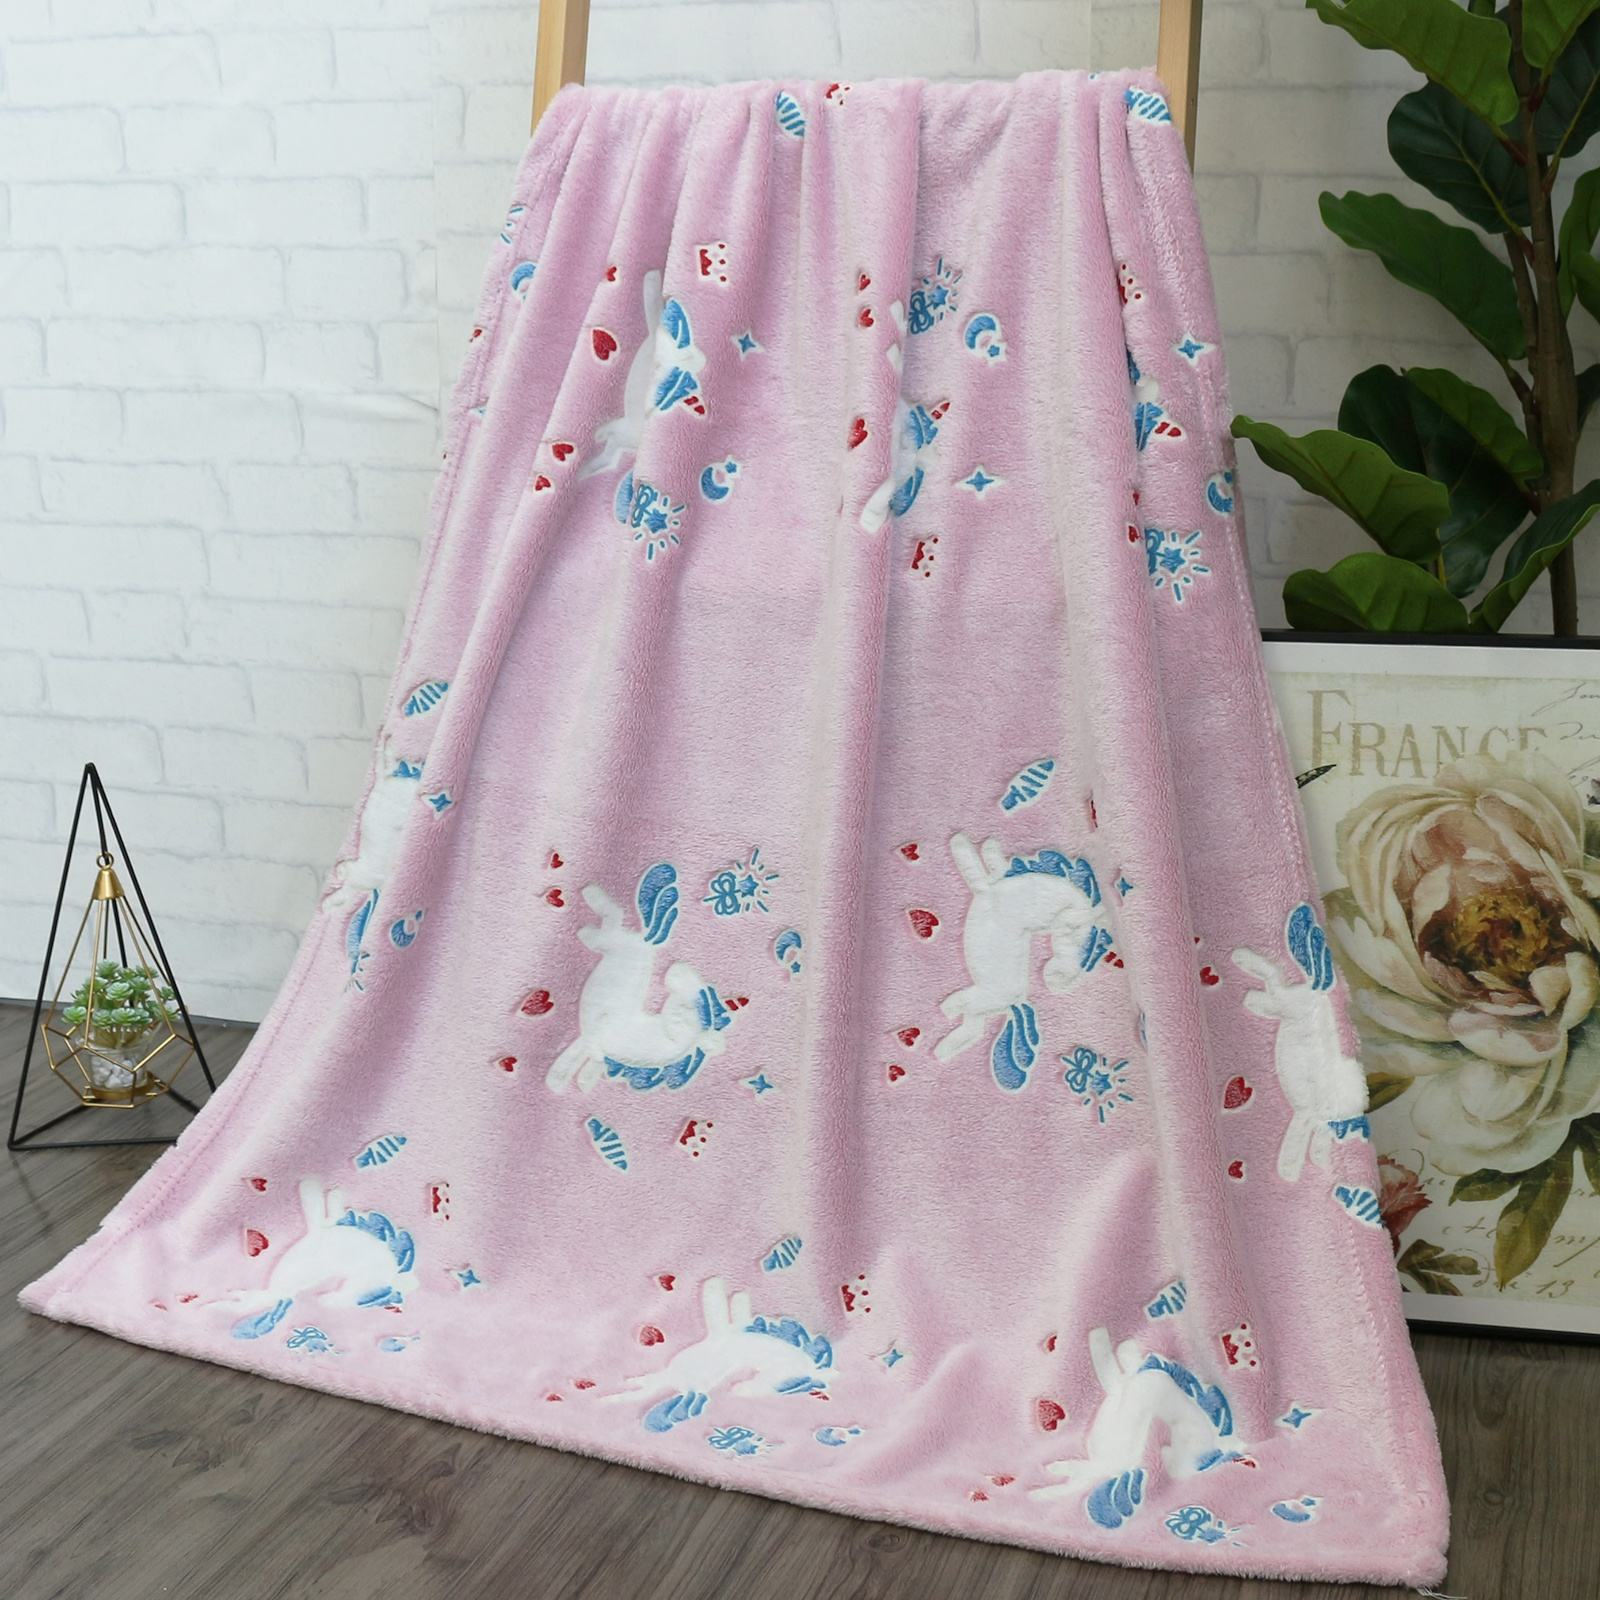 New design Pink Unicorn luminous blanket Glow In The Dark Flannel Throw Blankets for kids 100*150cm